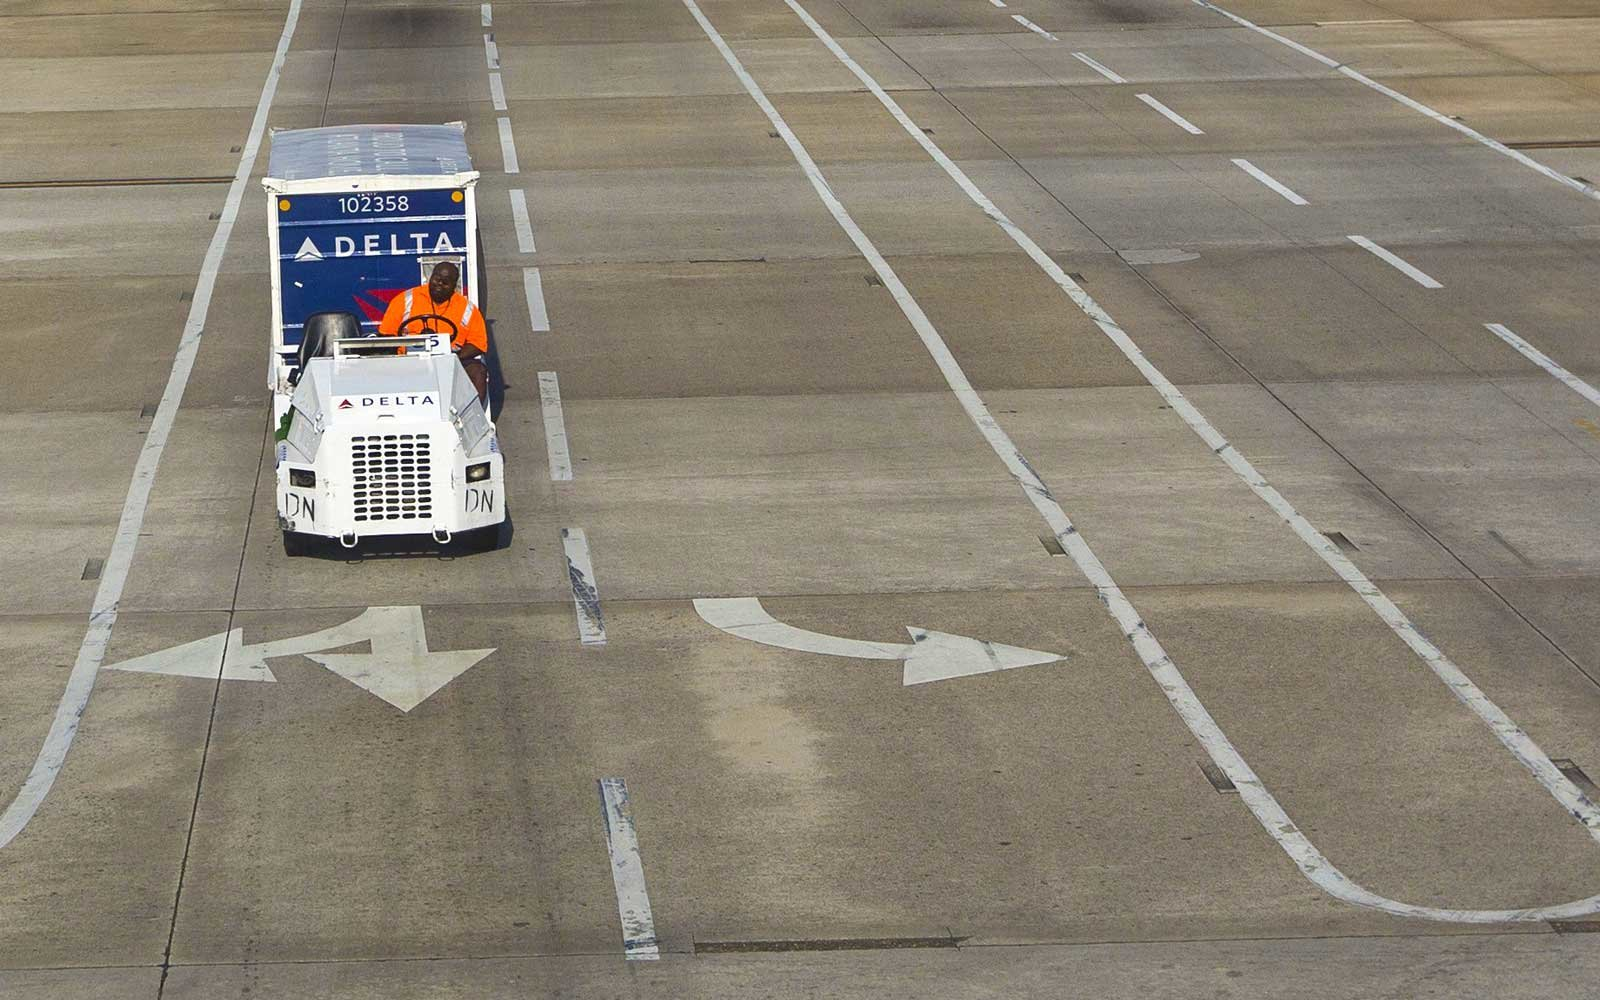 A Delta airlines luggage transportation truck drives on the tarmac at the Hartsfield-Jackson Atlanta International airport